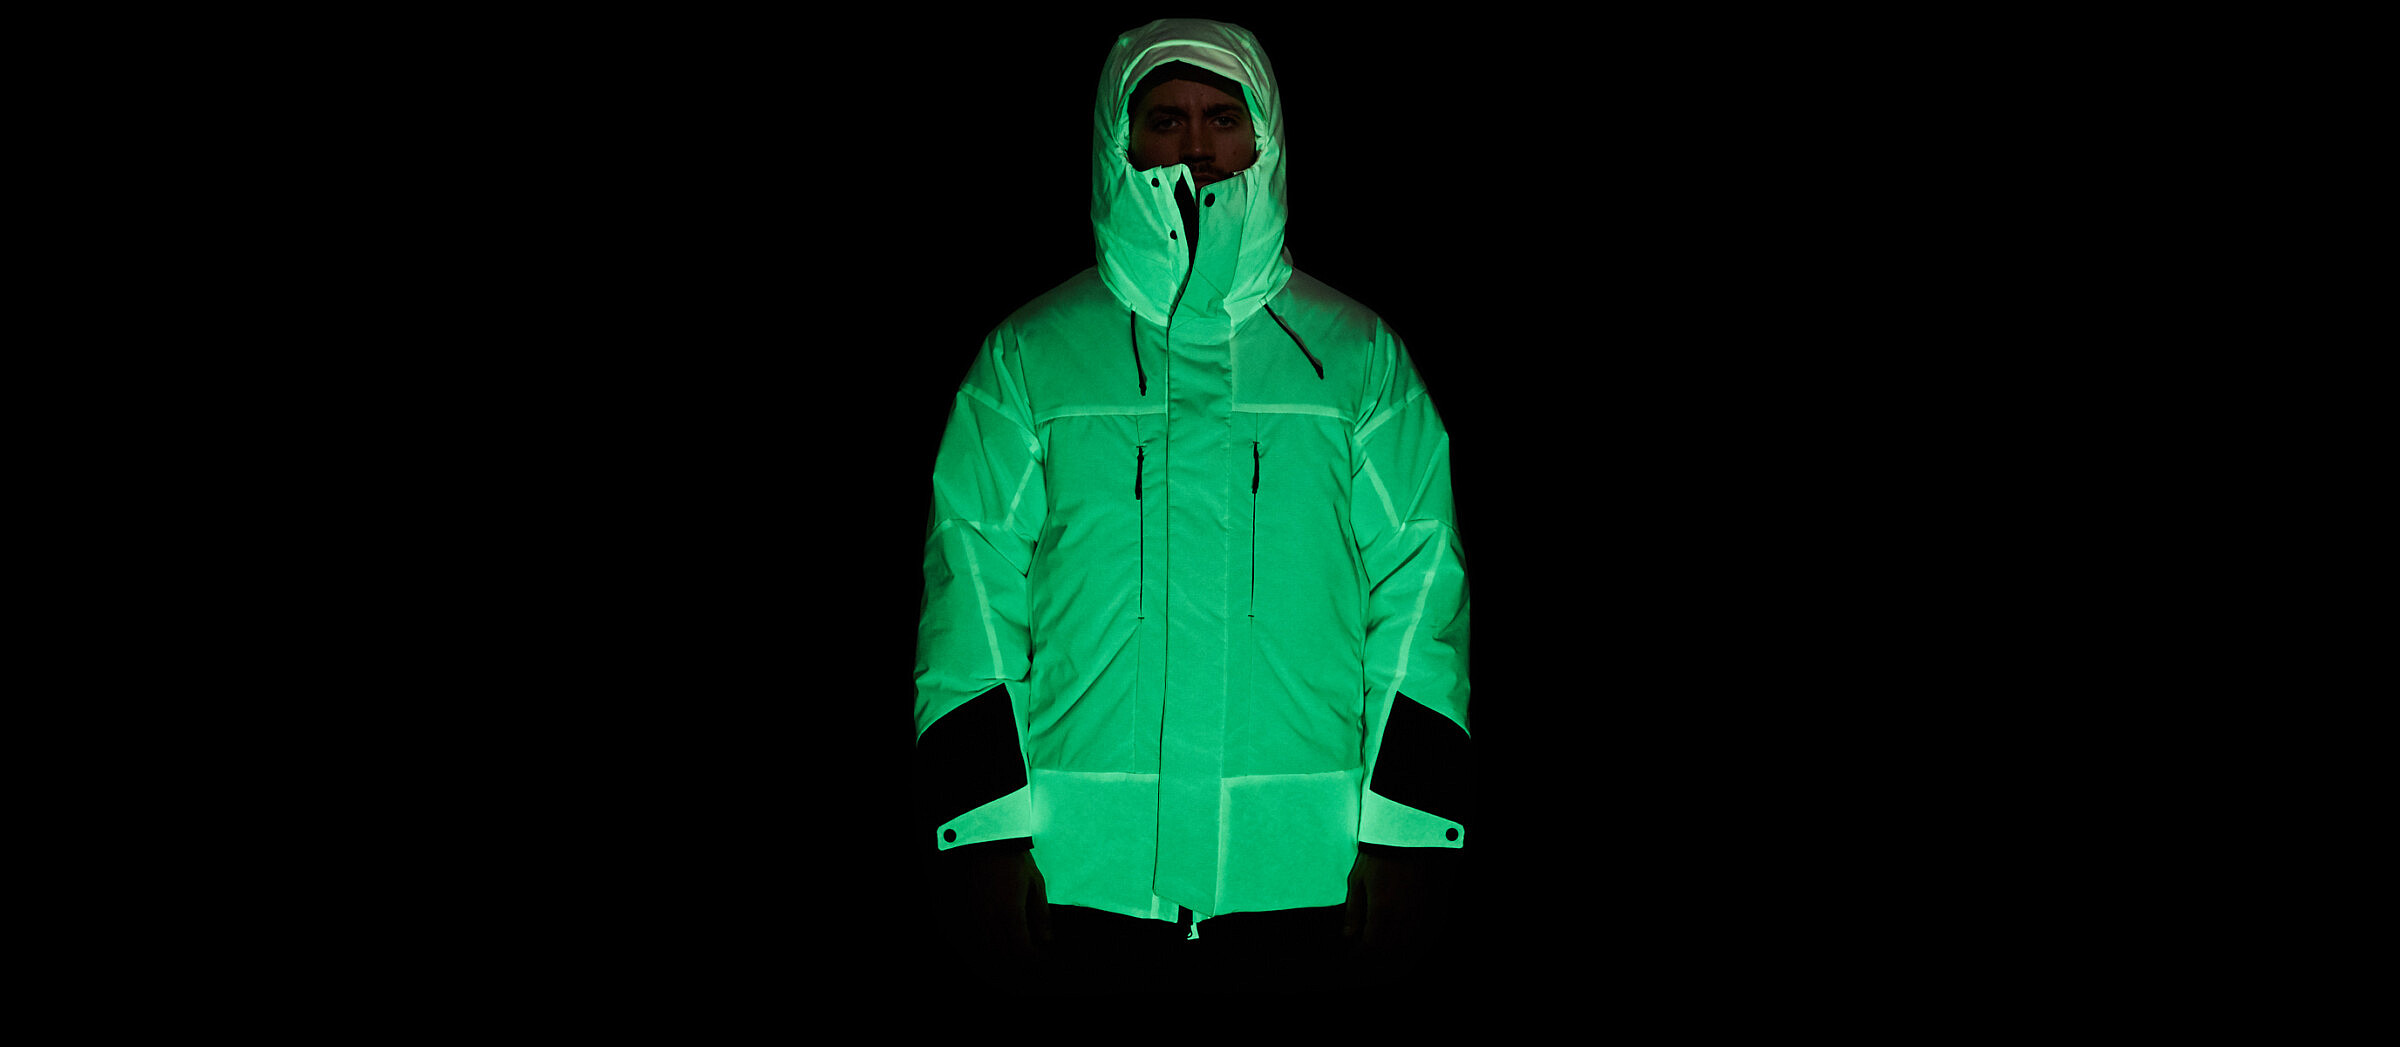 solar-charged-puffer-jacket-2752-435-2400x1047